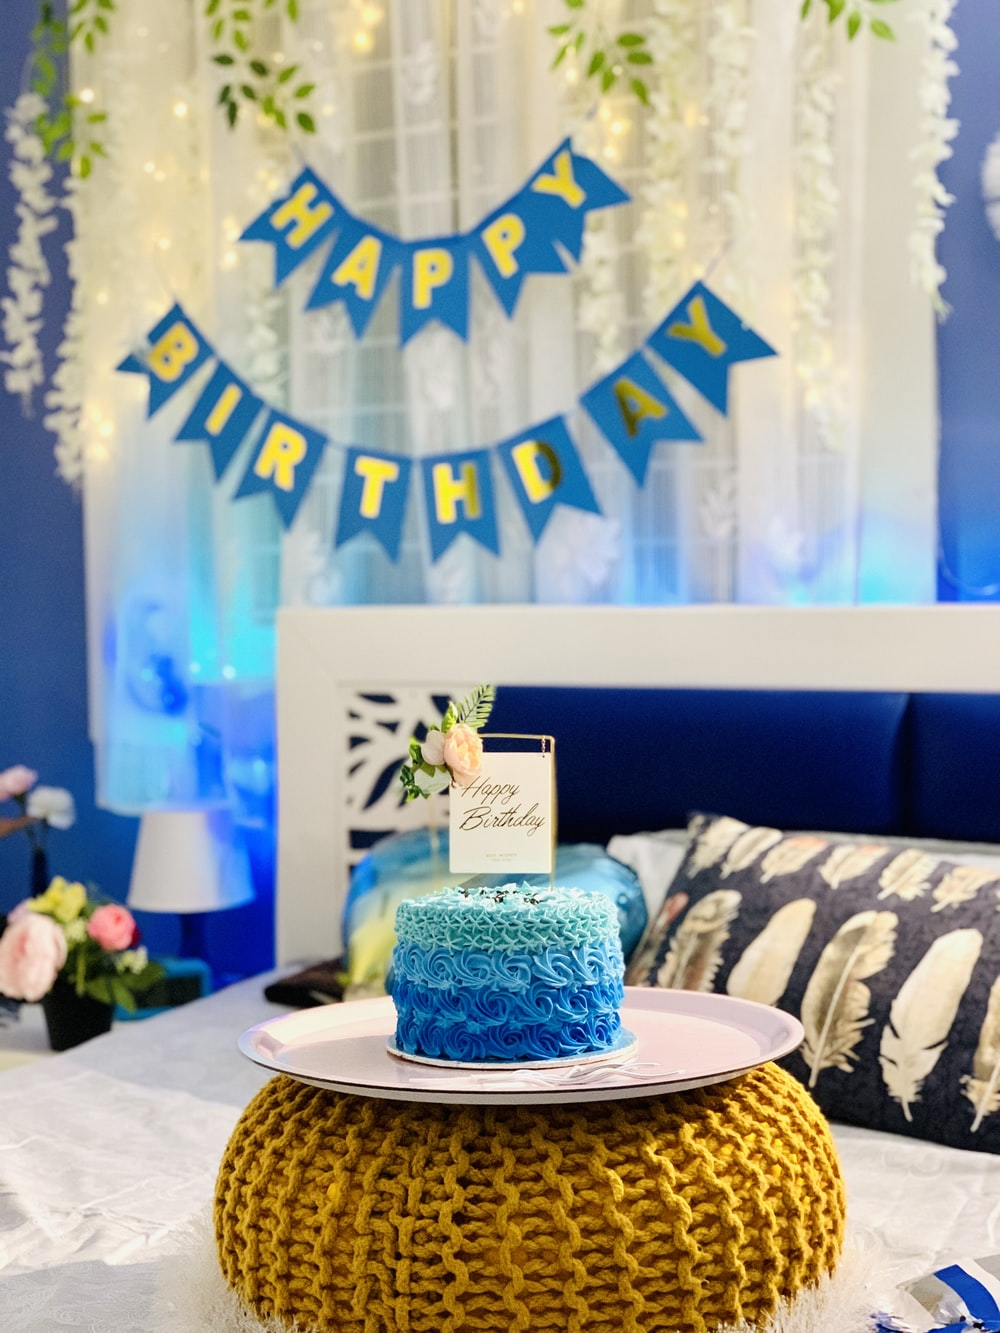 blue and white floral cake on brown wooden round table